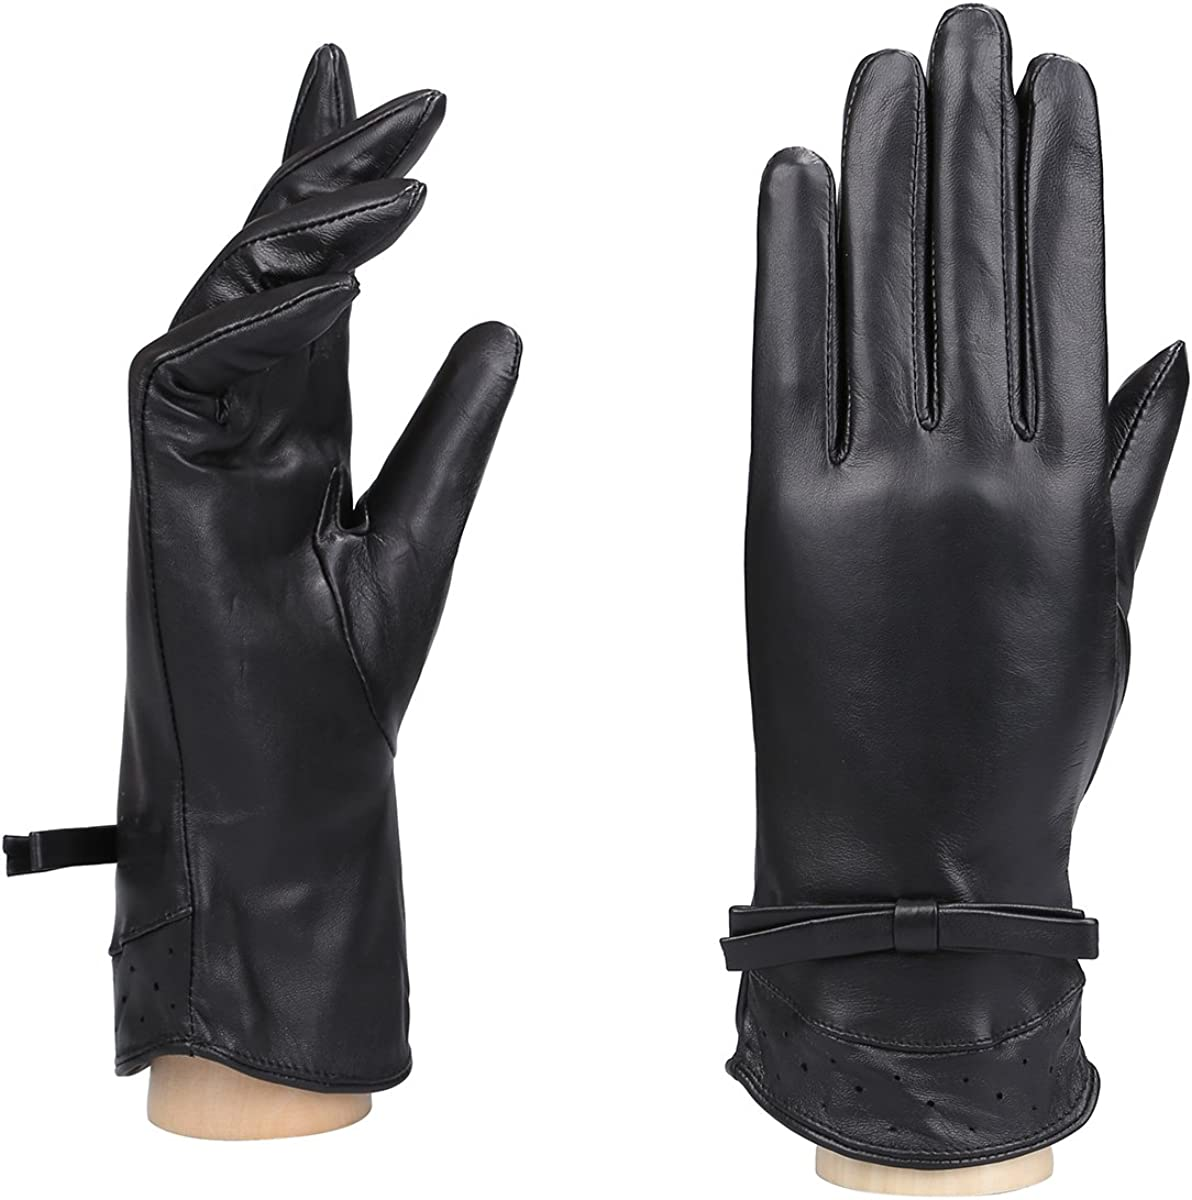 MoDA Women's Ms. Melbourne Genuine Leather Fully Lined Winter Gloves